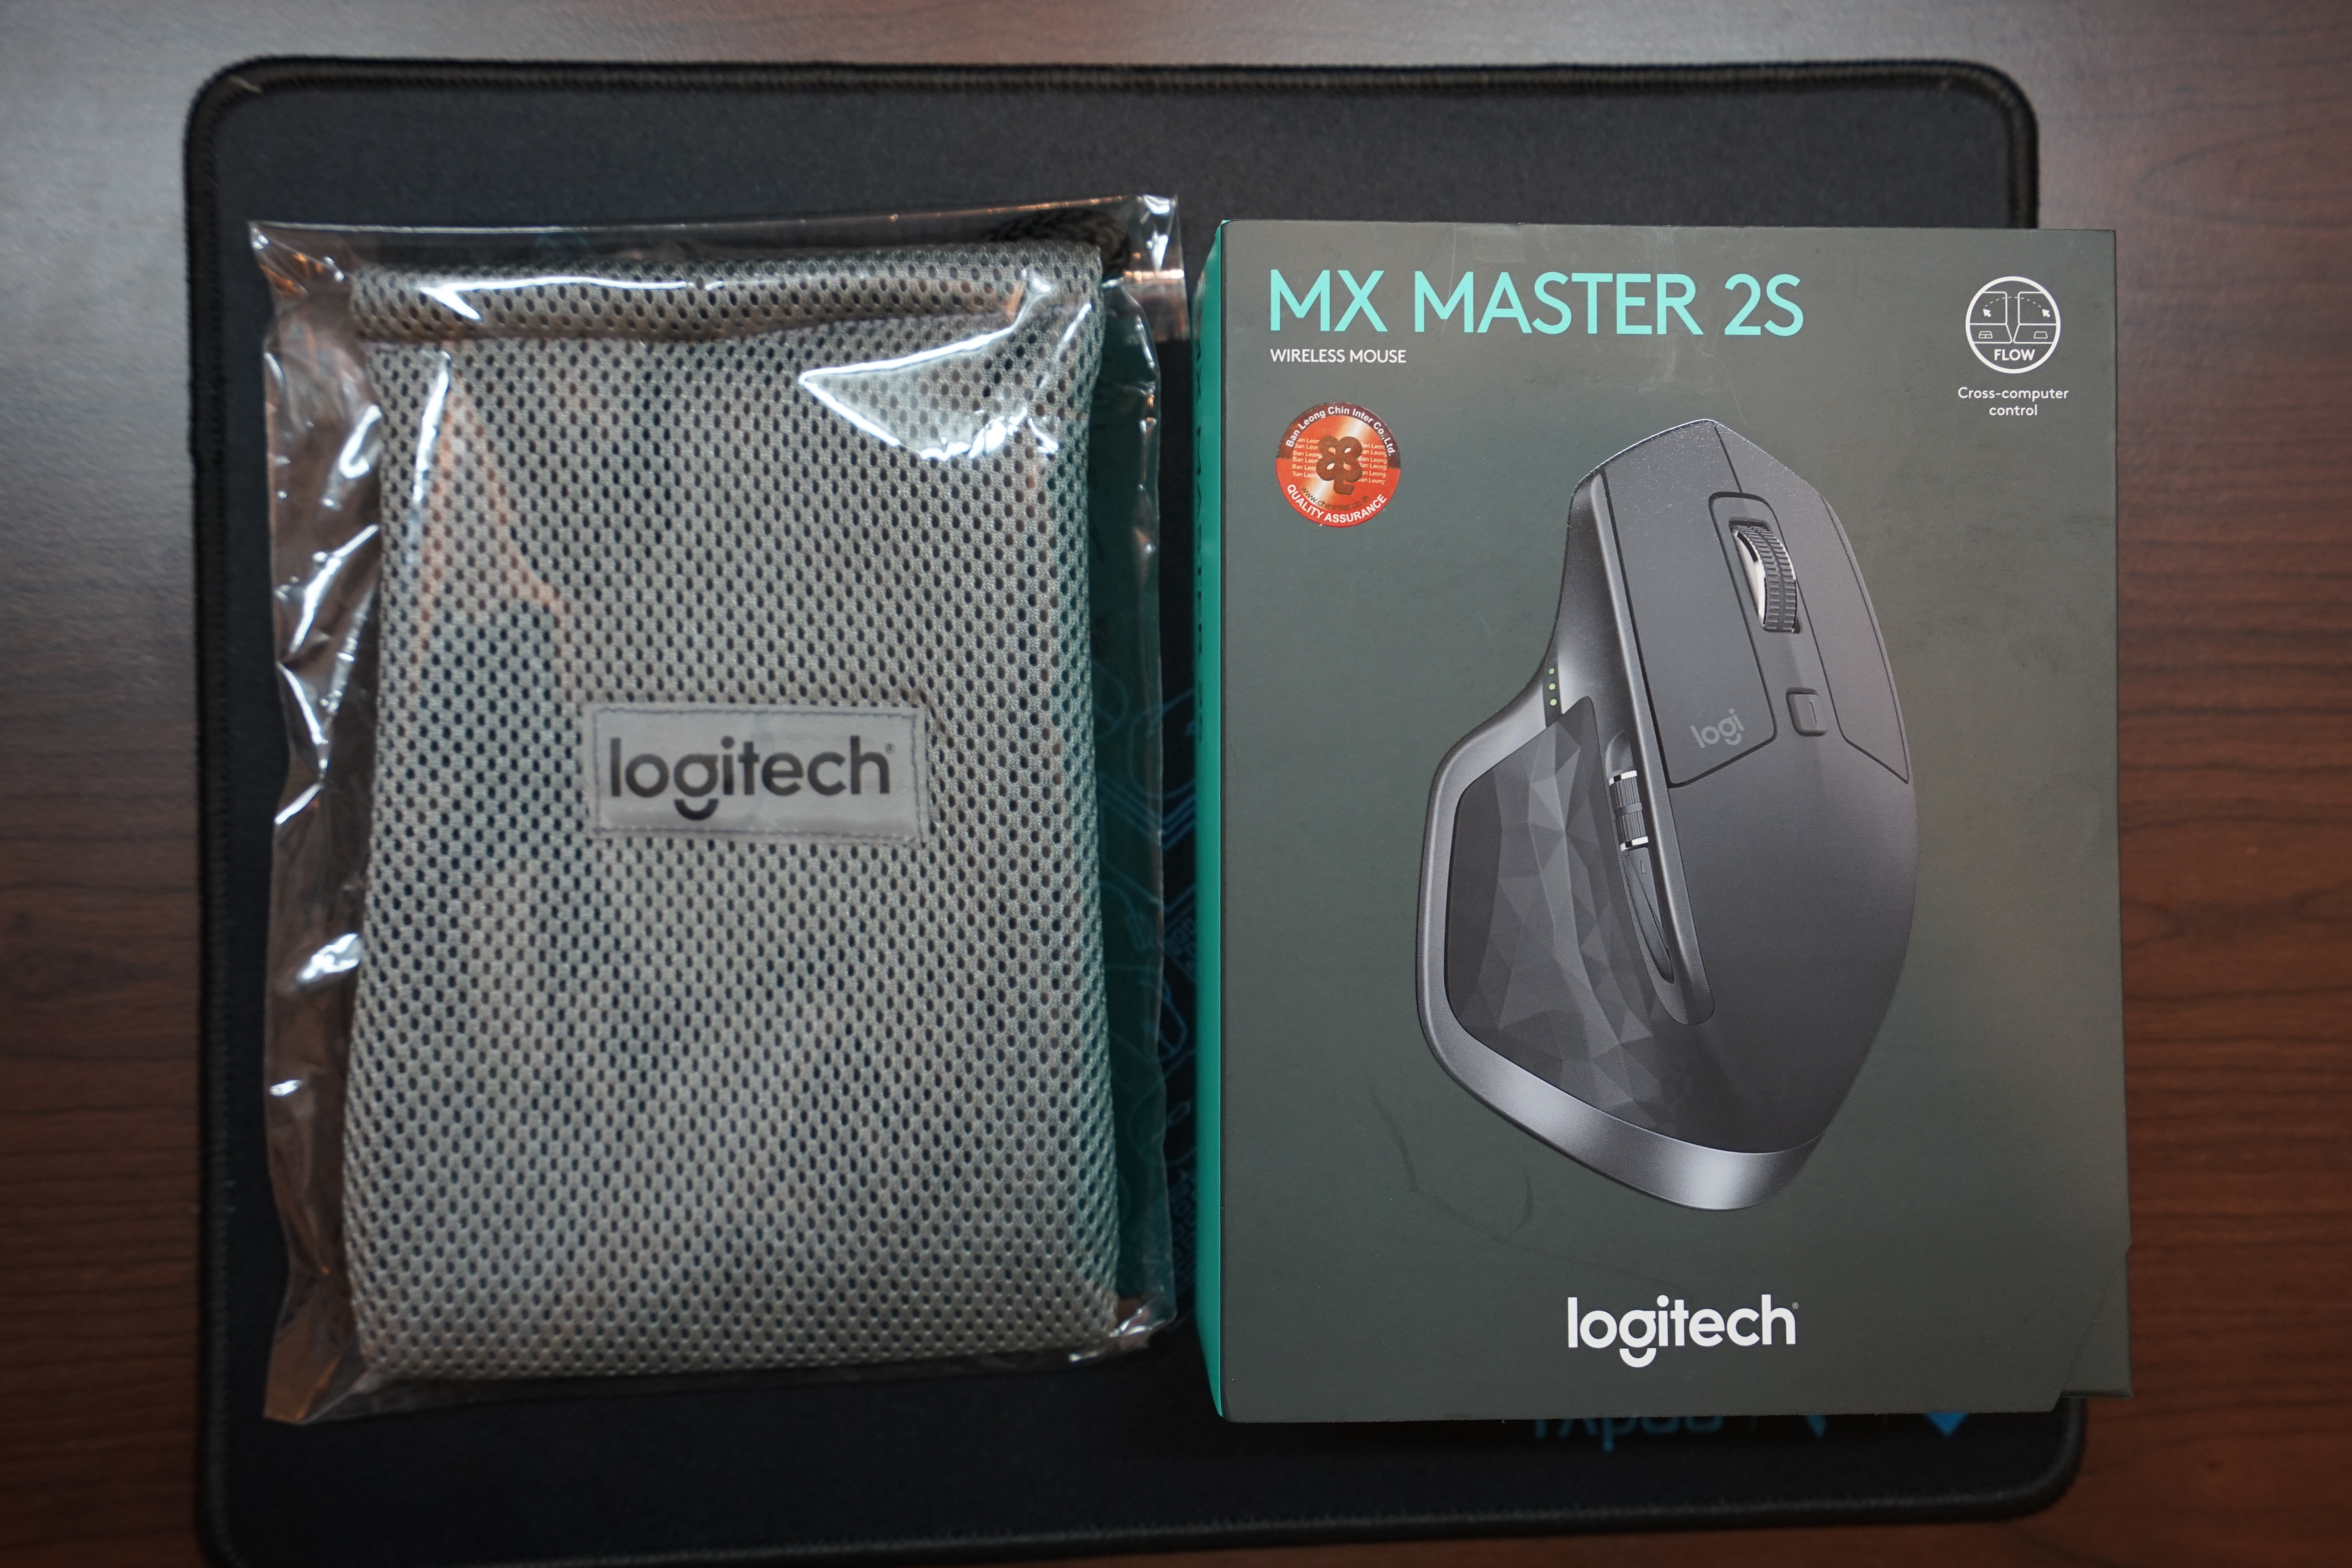 Logitech MX Master 2S with its bag